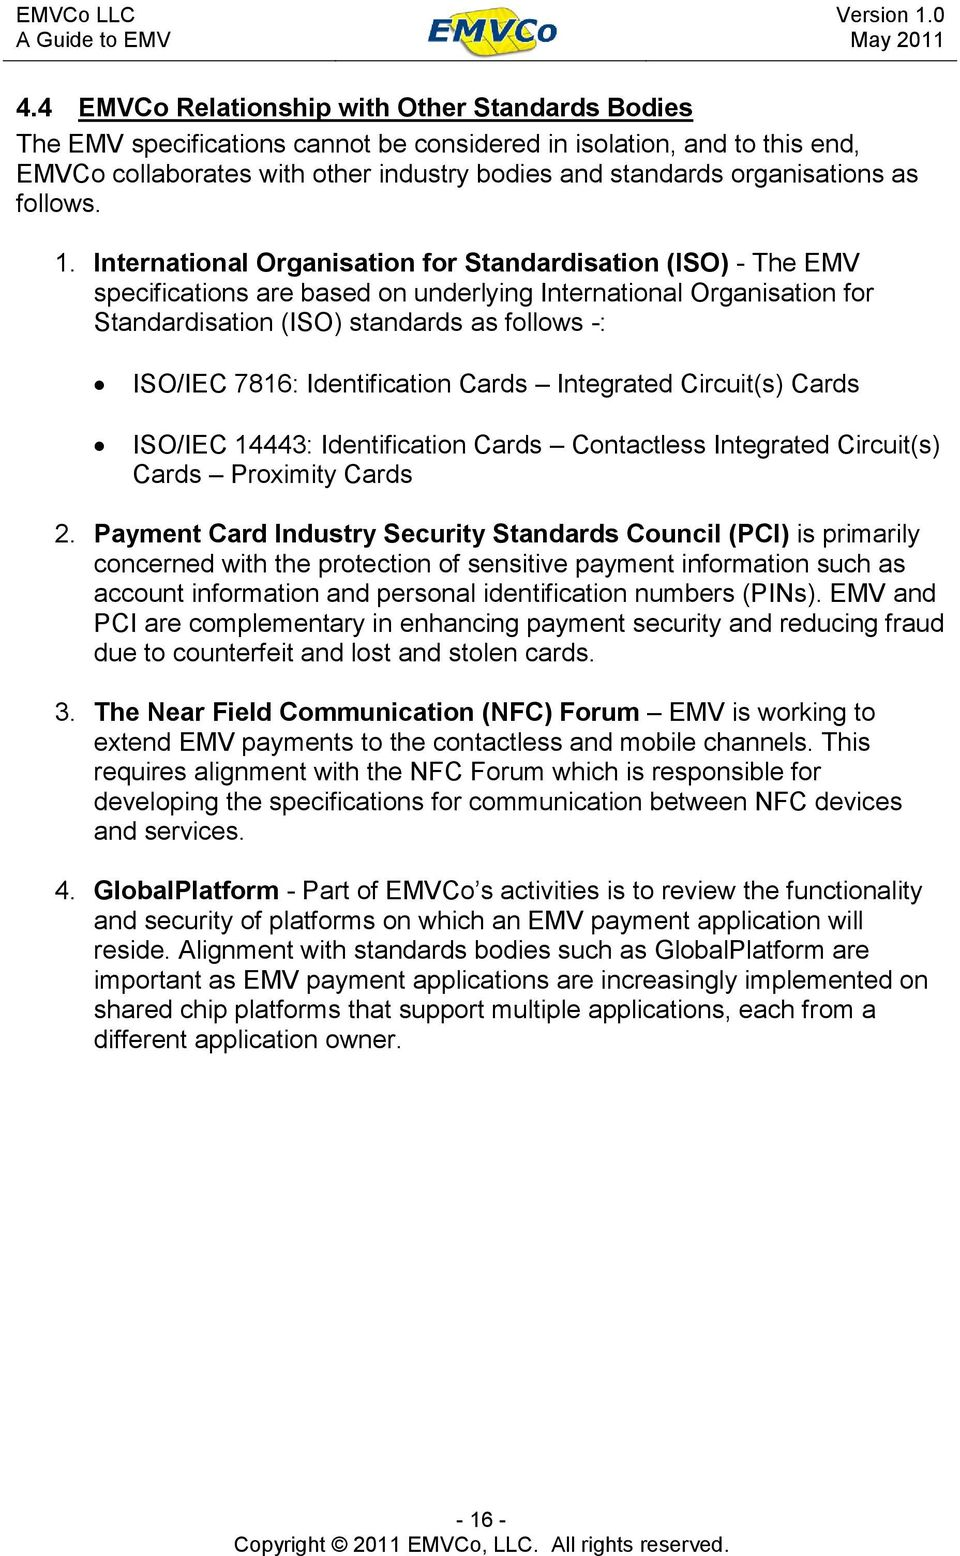 International Organisation for Standardisation (ISO) - The EMV specifications are based on underlying International Organisation for Standardisation (ISO) standards as follows -: ISO/IEC 7816: